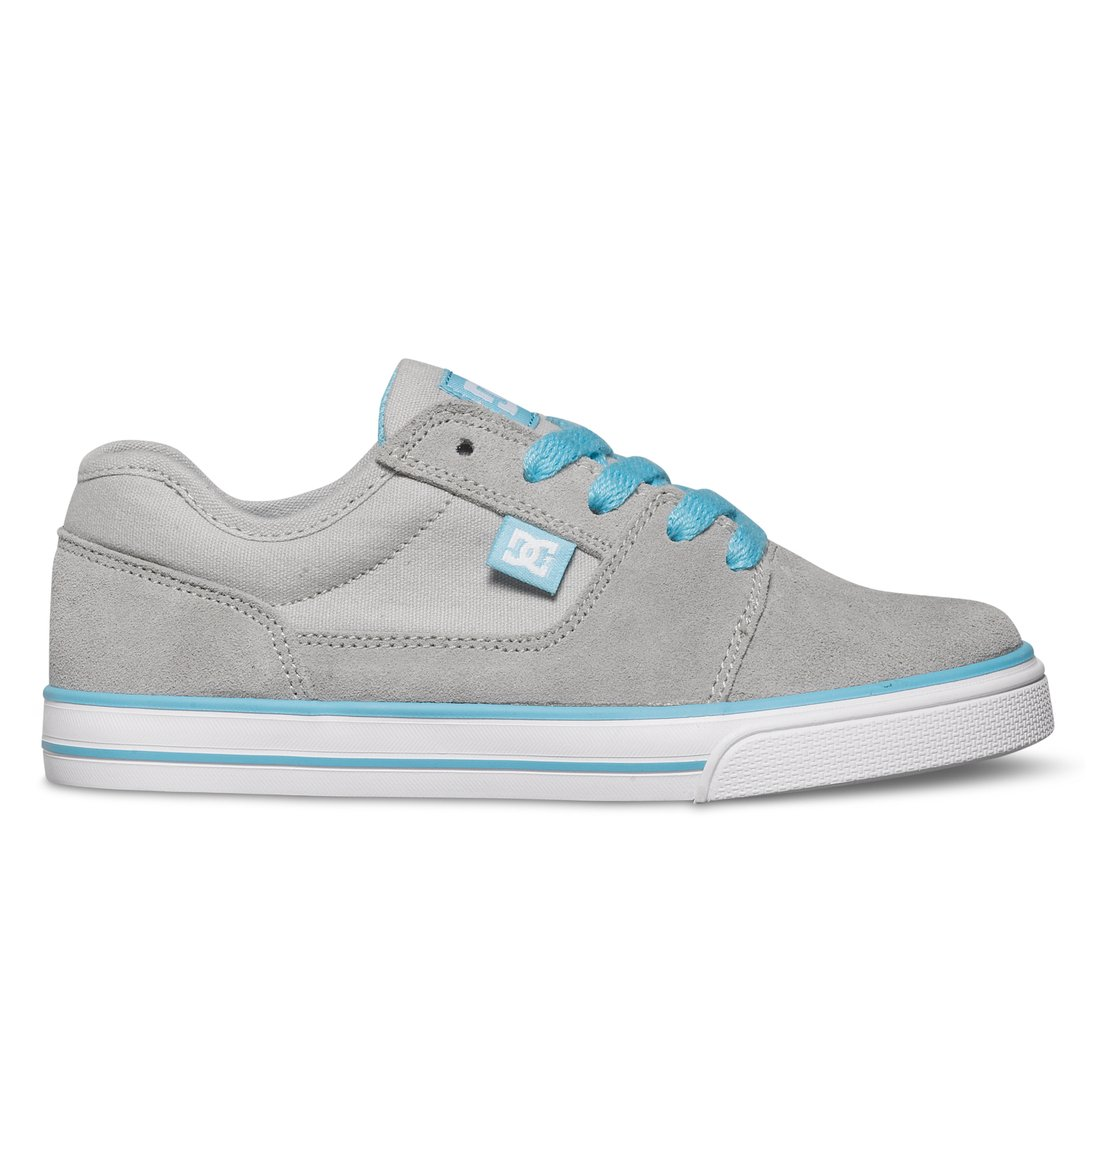 Dc Tonik Shoes Adbs Size  And A Half